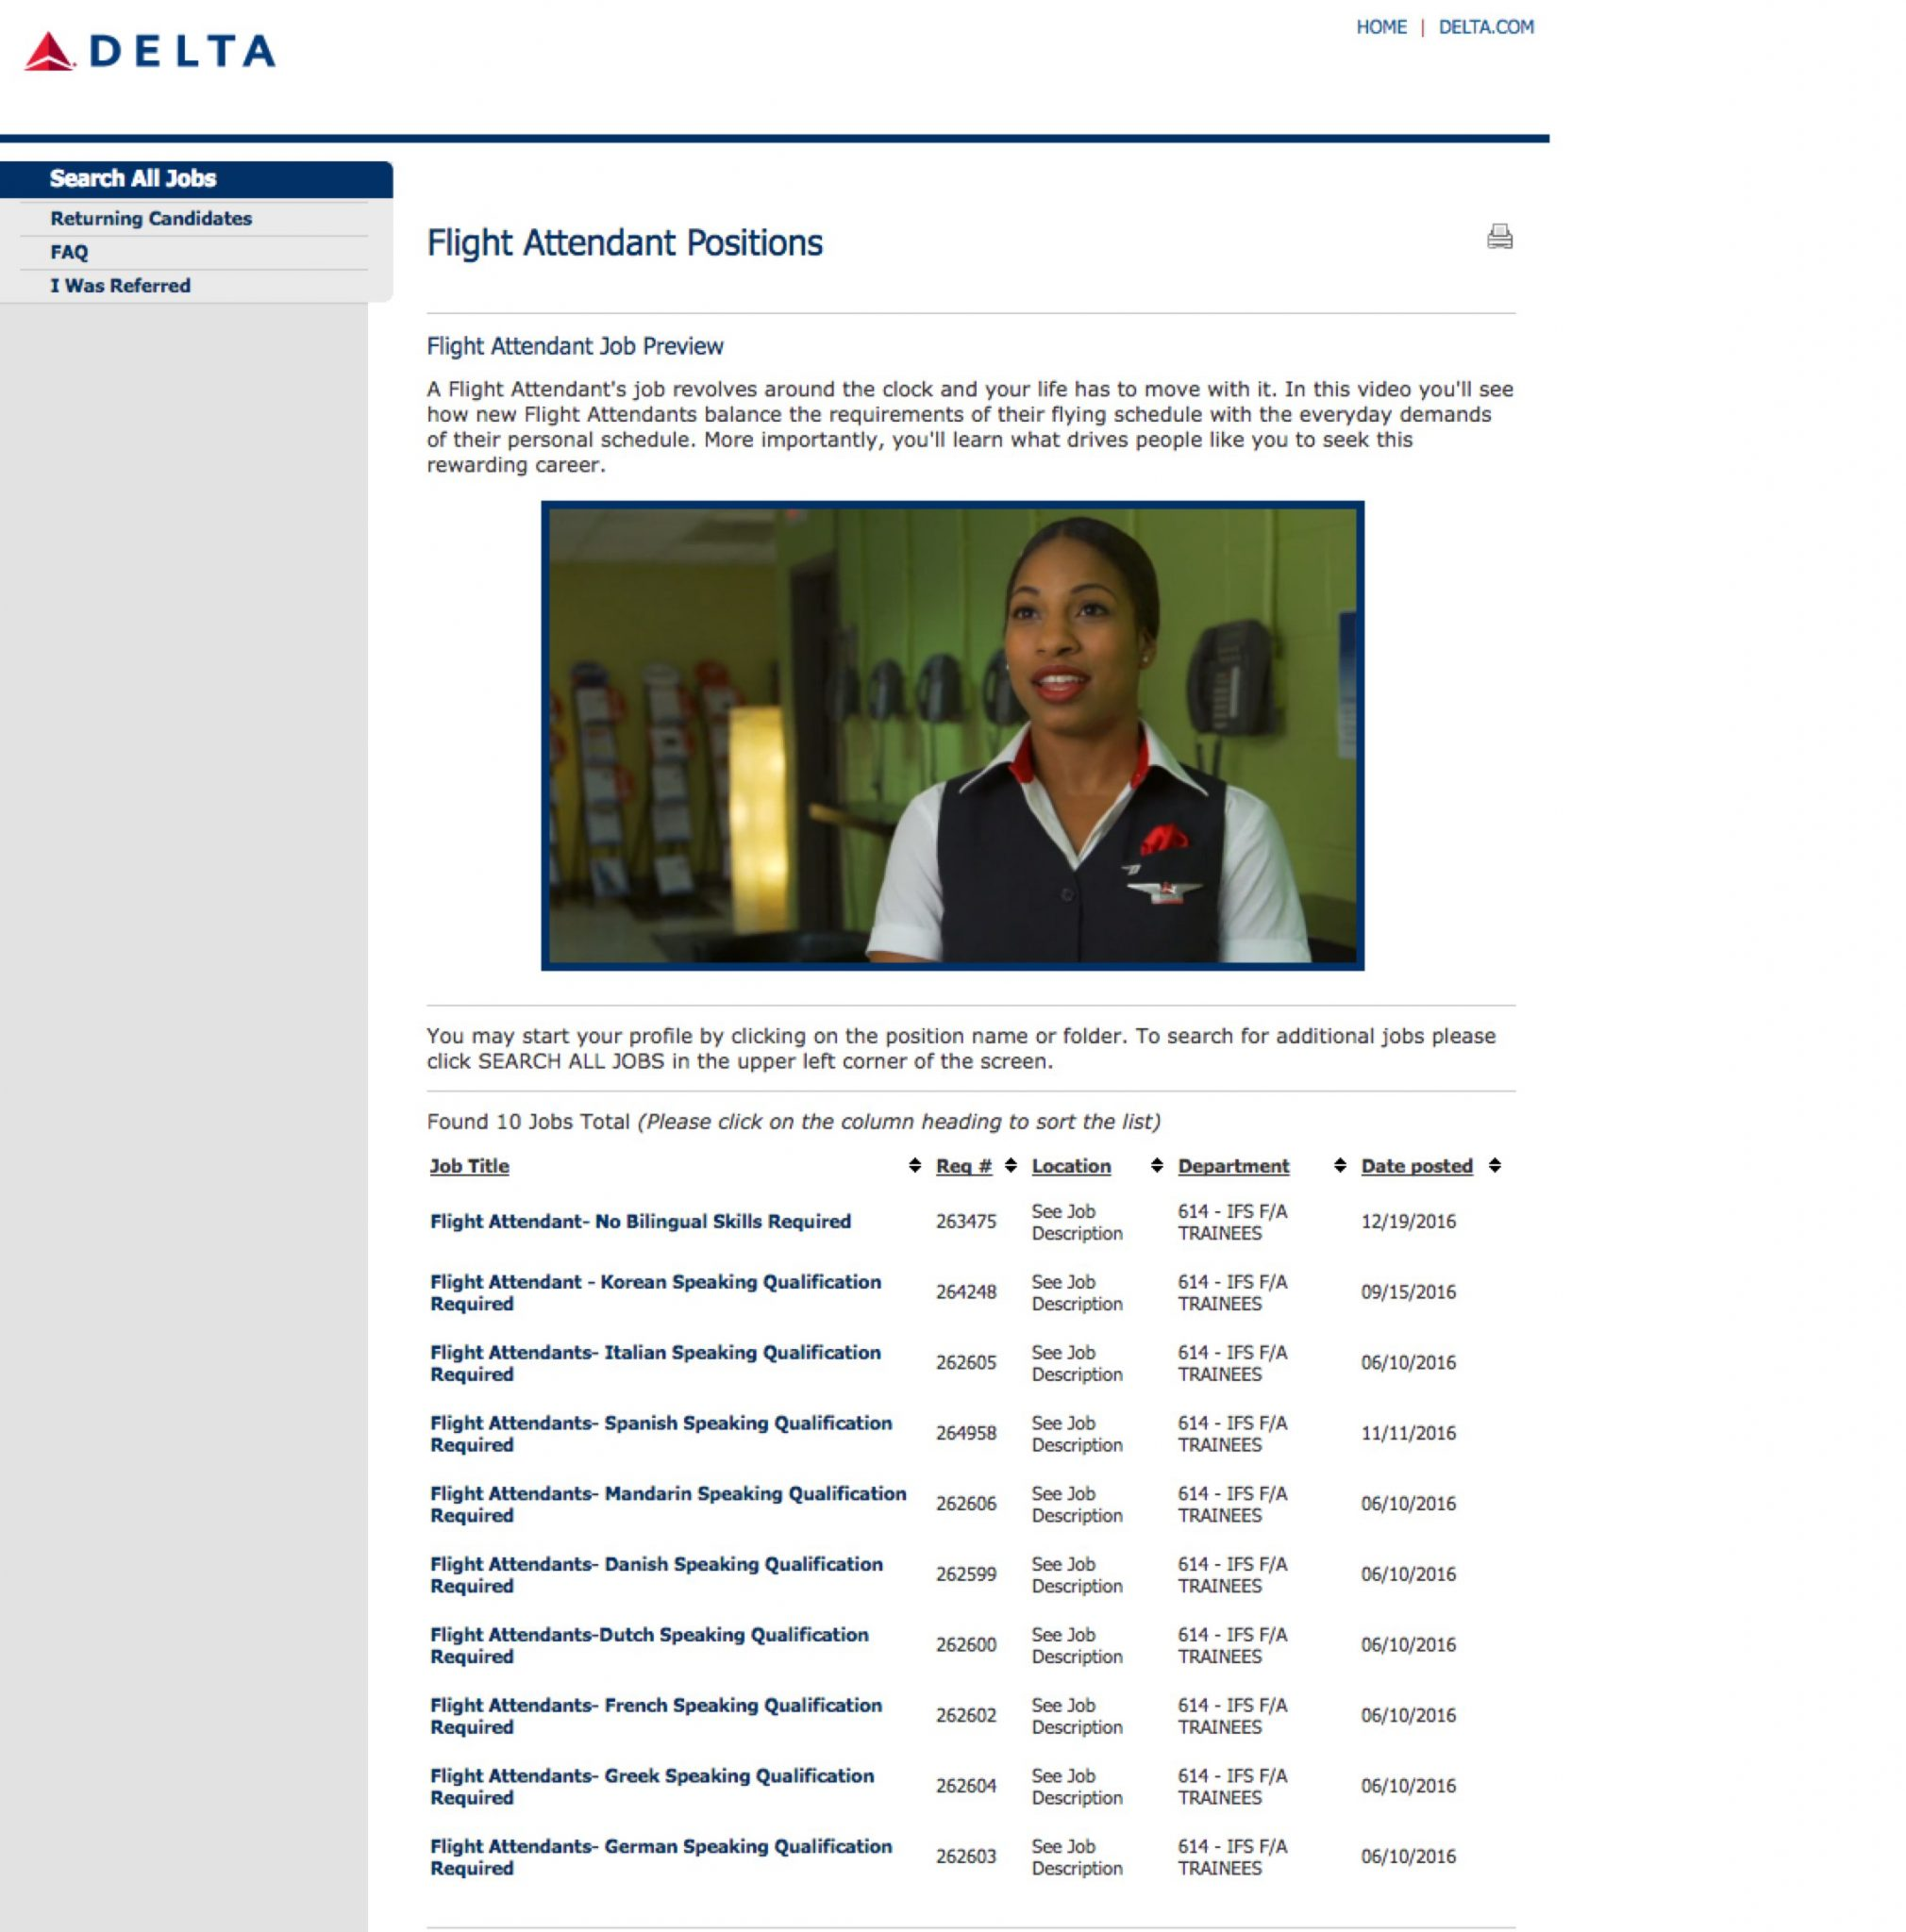 Delta Video Job Previews Flight Attendants | Ongig Blog